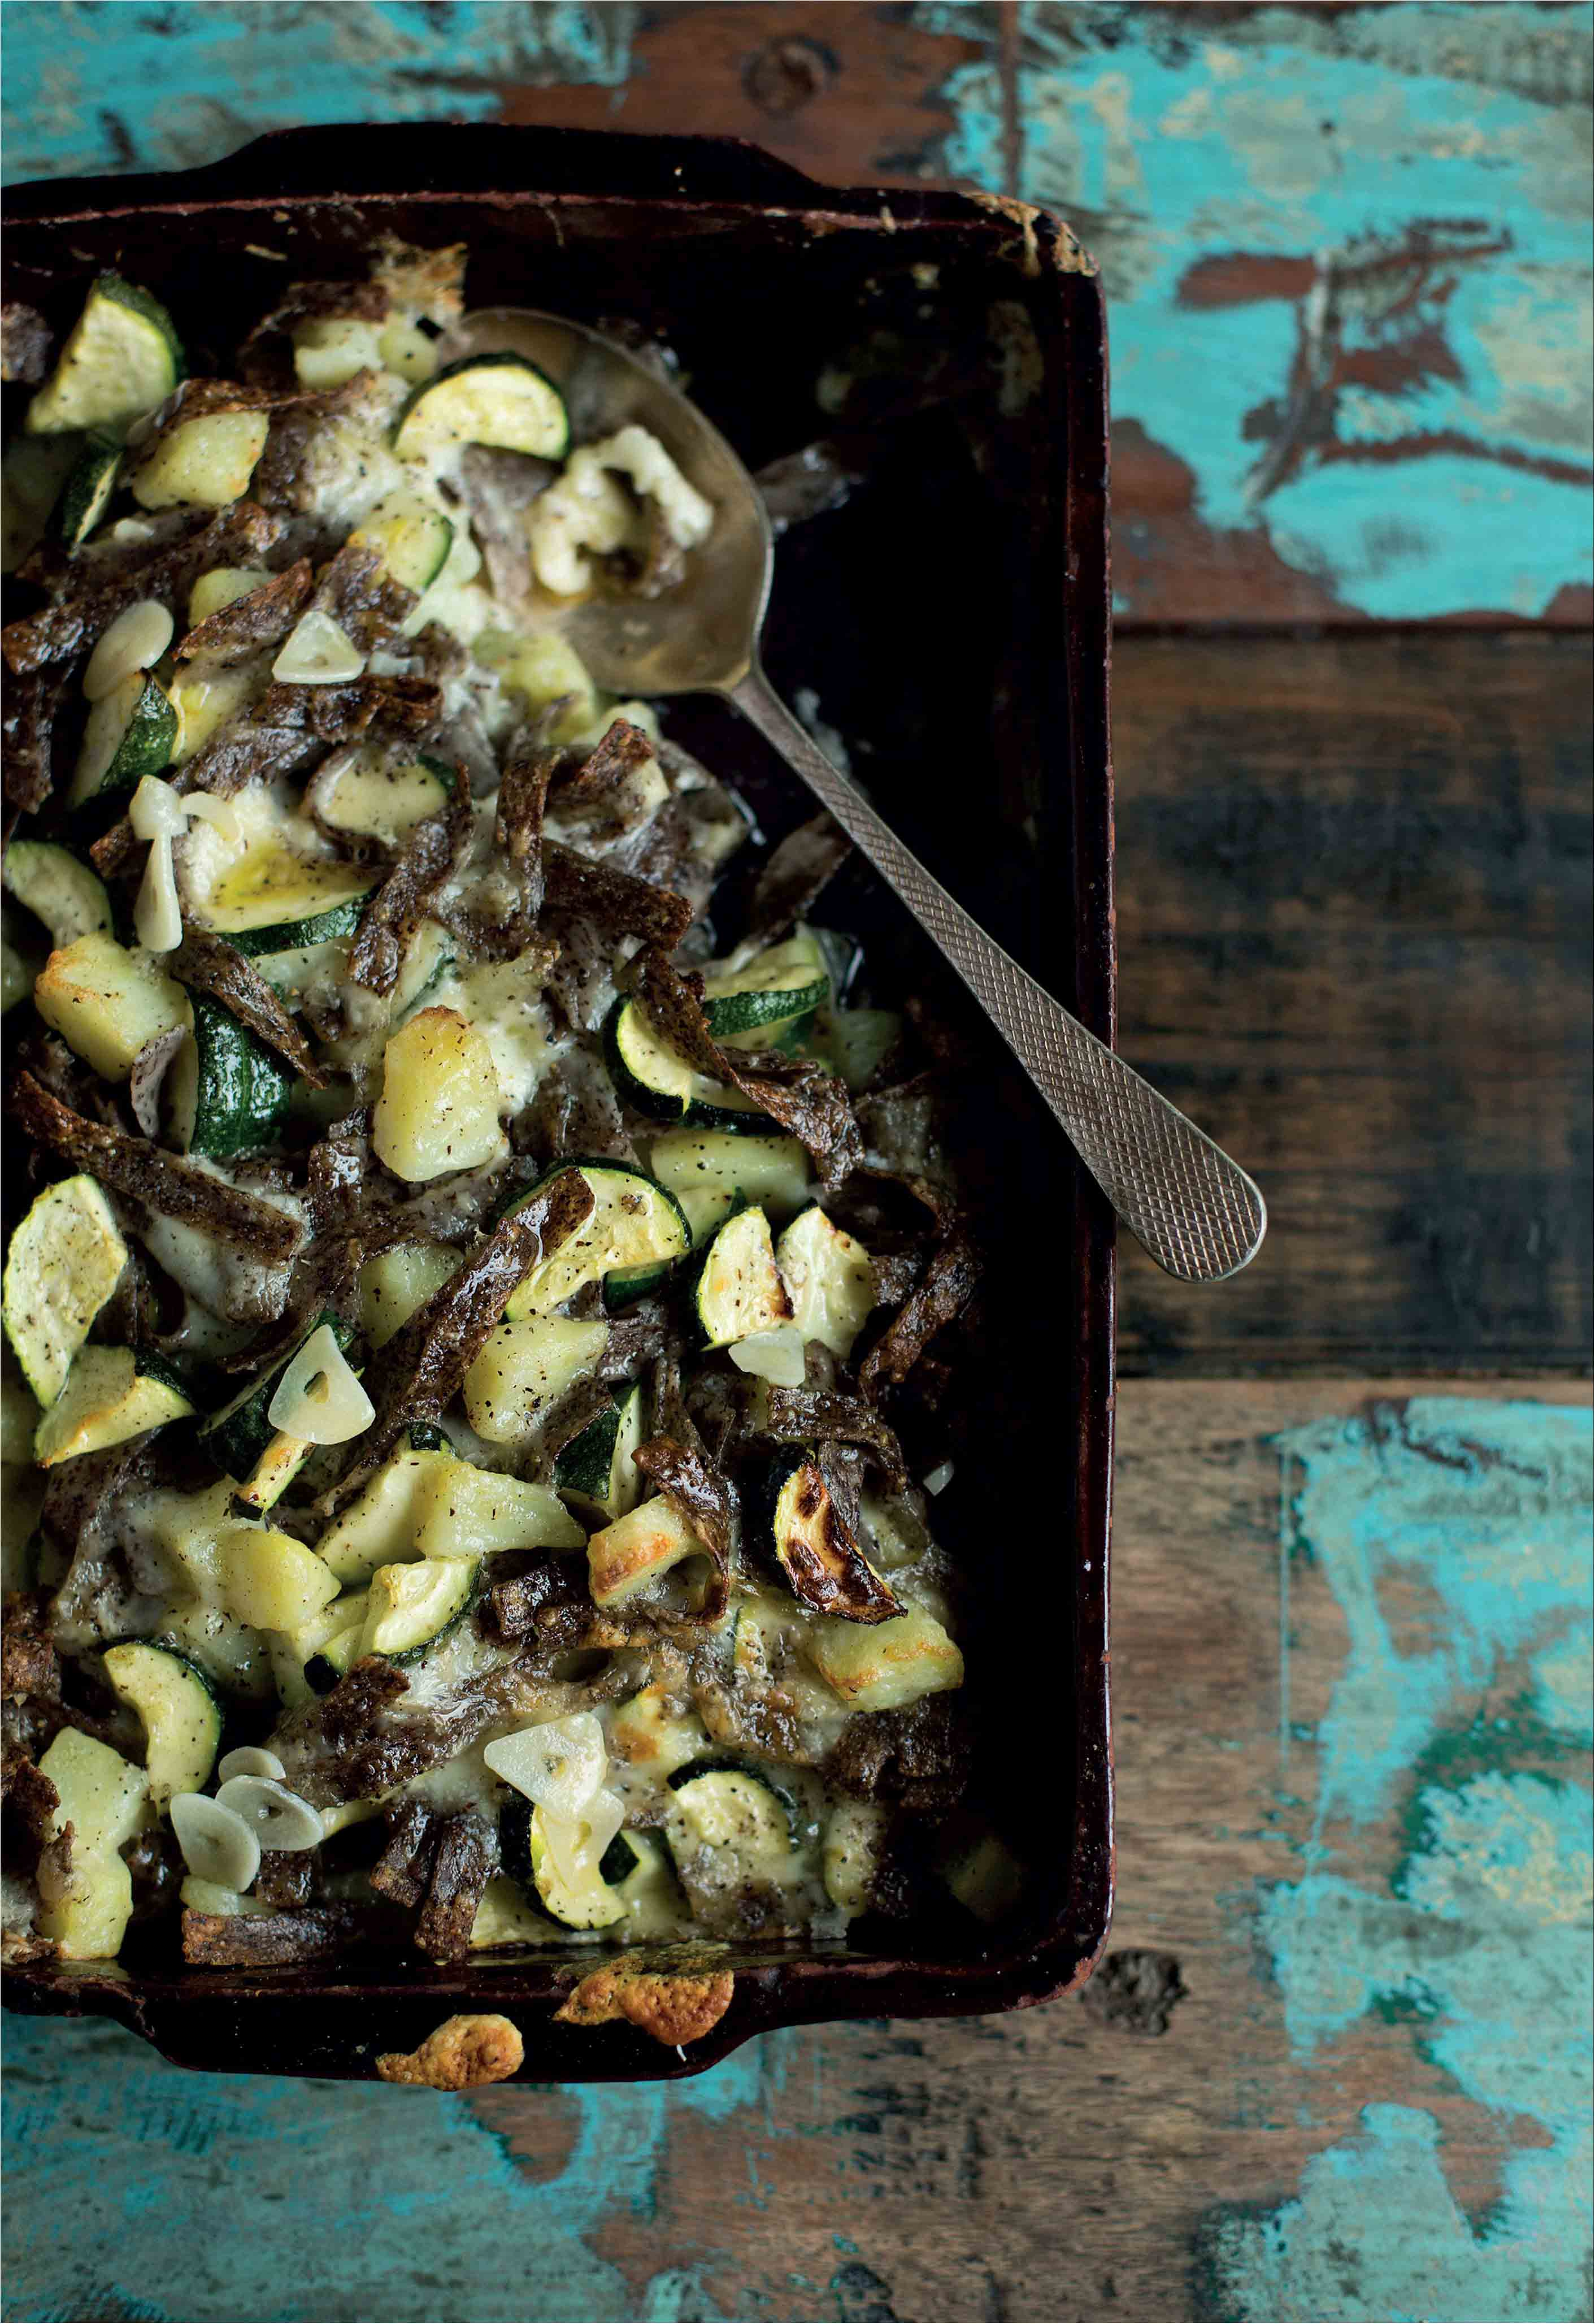 Baked buckwheat noodles with cheese, courgettes and potato